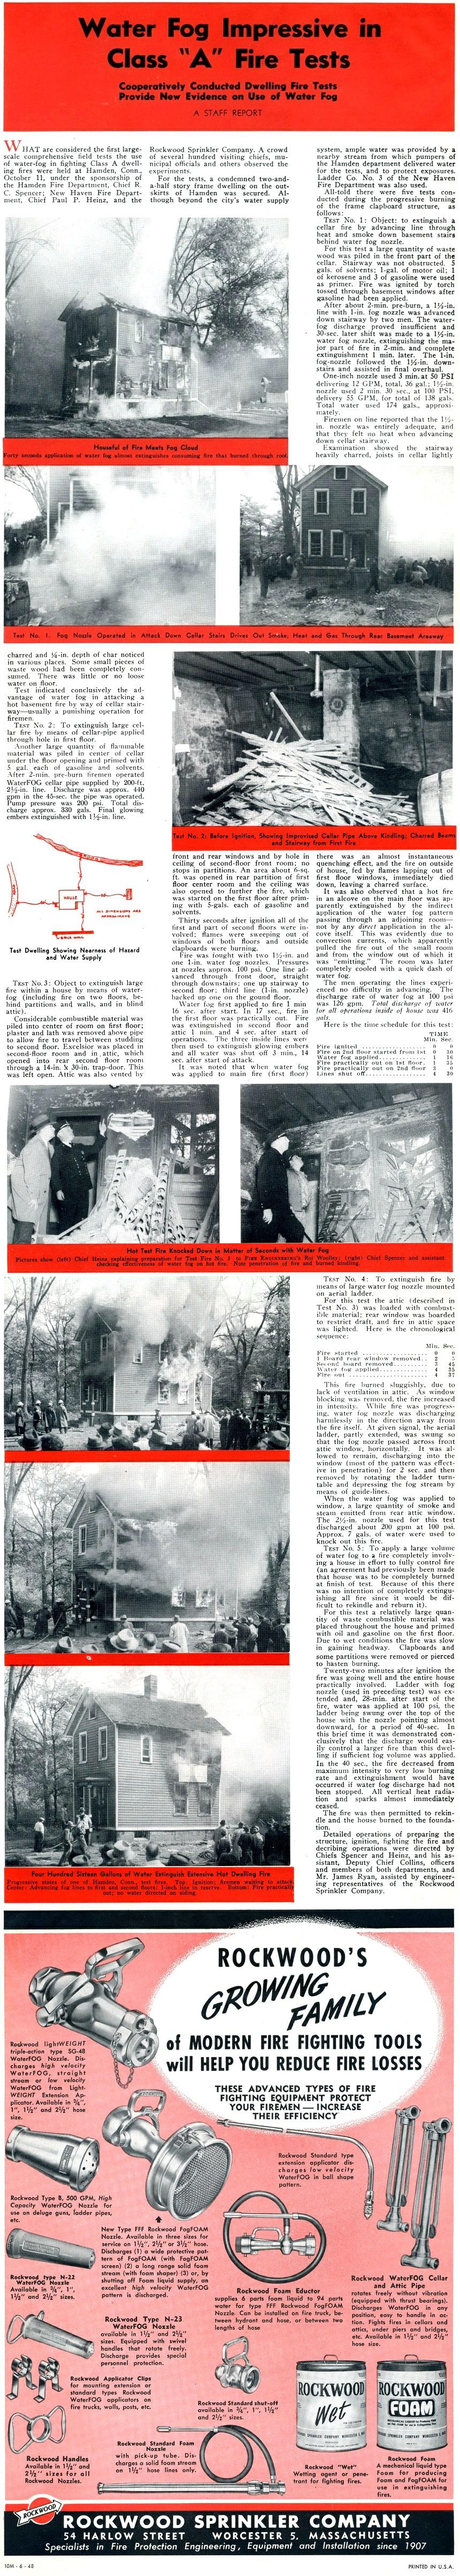 FIRE ENGINEERING REPRINT, June 1948 (Courtesy of Chan Brainard)